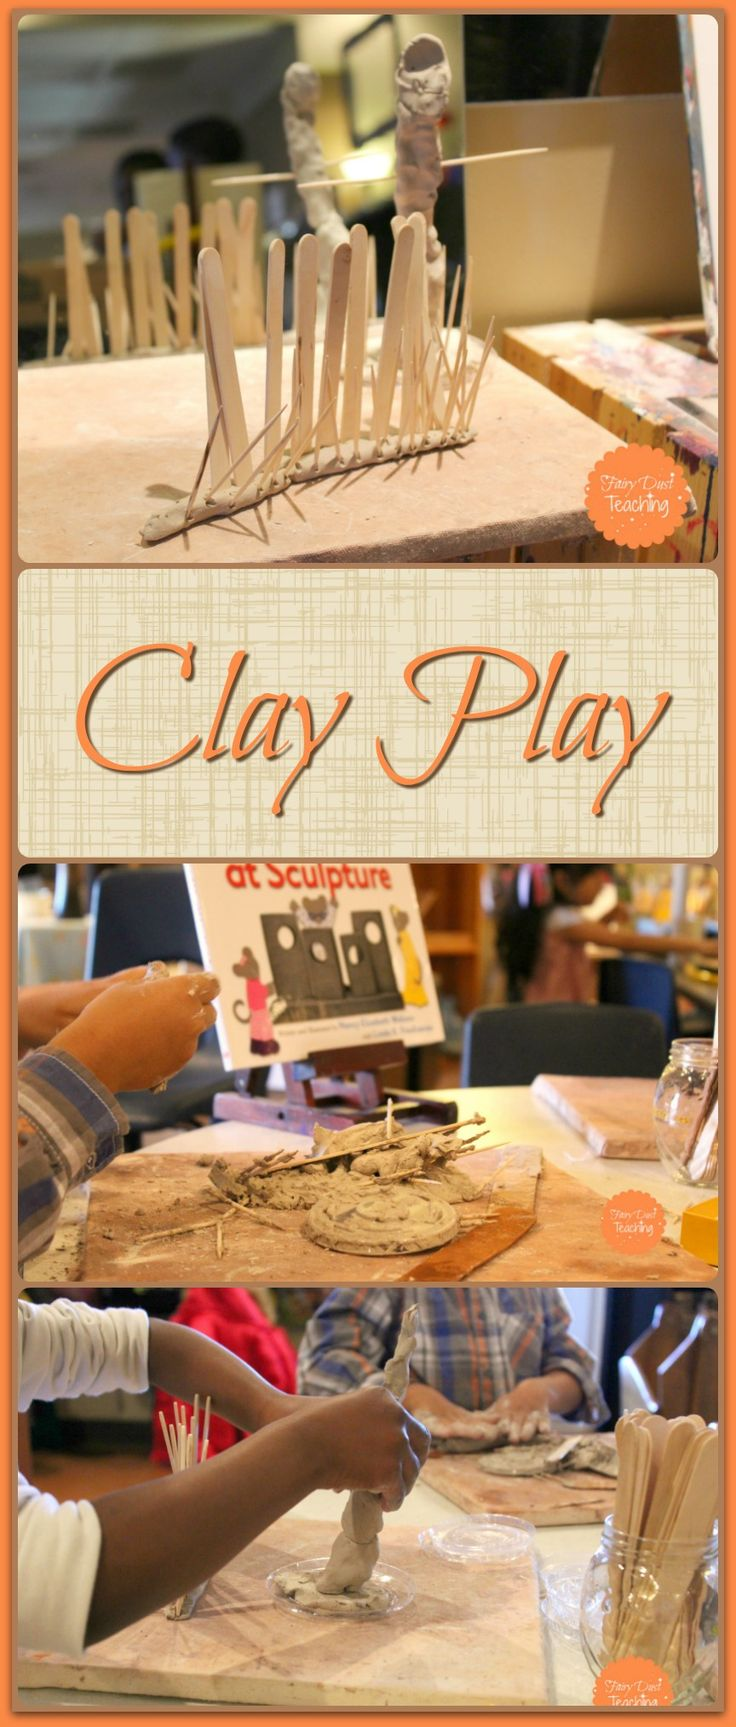 Clay is an incredibly powerful medium. It promotes concentration, fine motor skills, as well as creativity. Like Fairy Dust Teaching on Facebook for more Reggio-Inspired activity ideas!